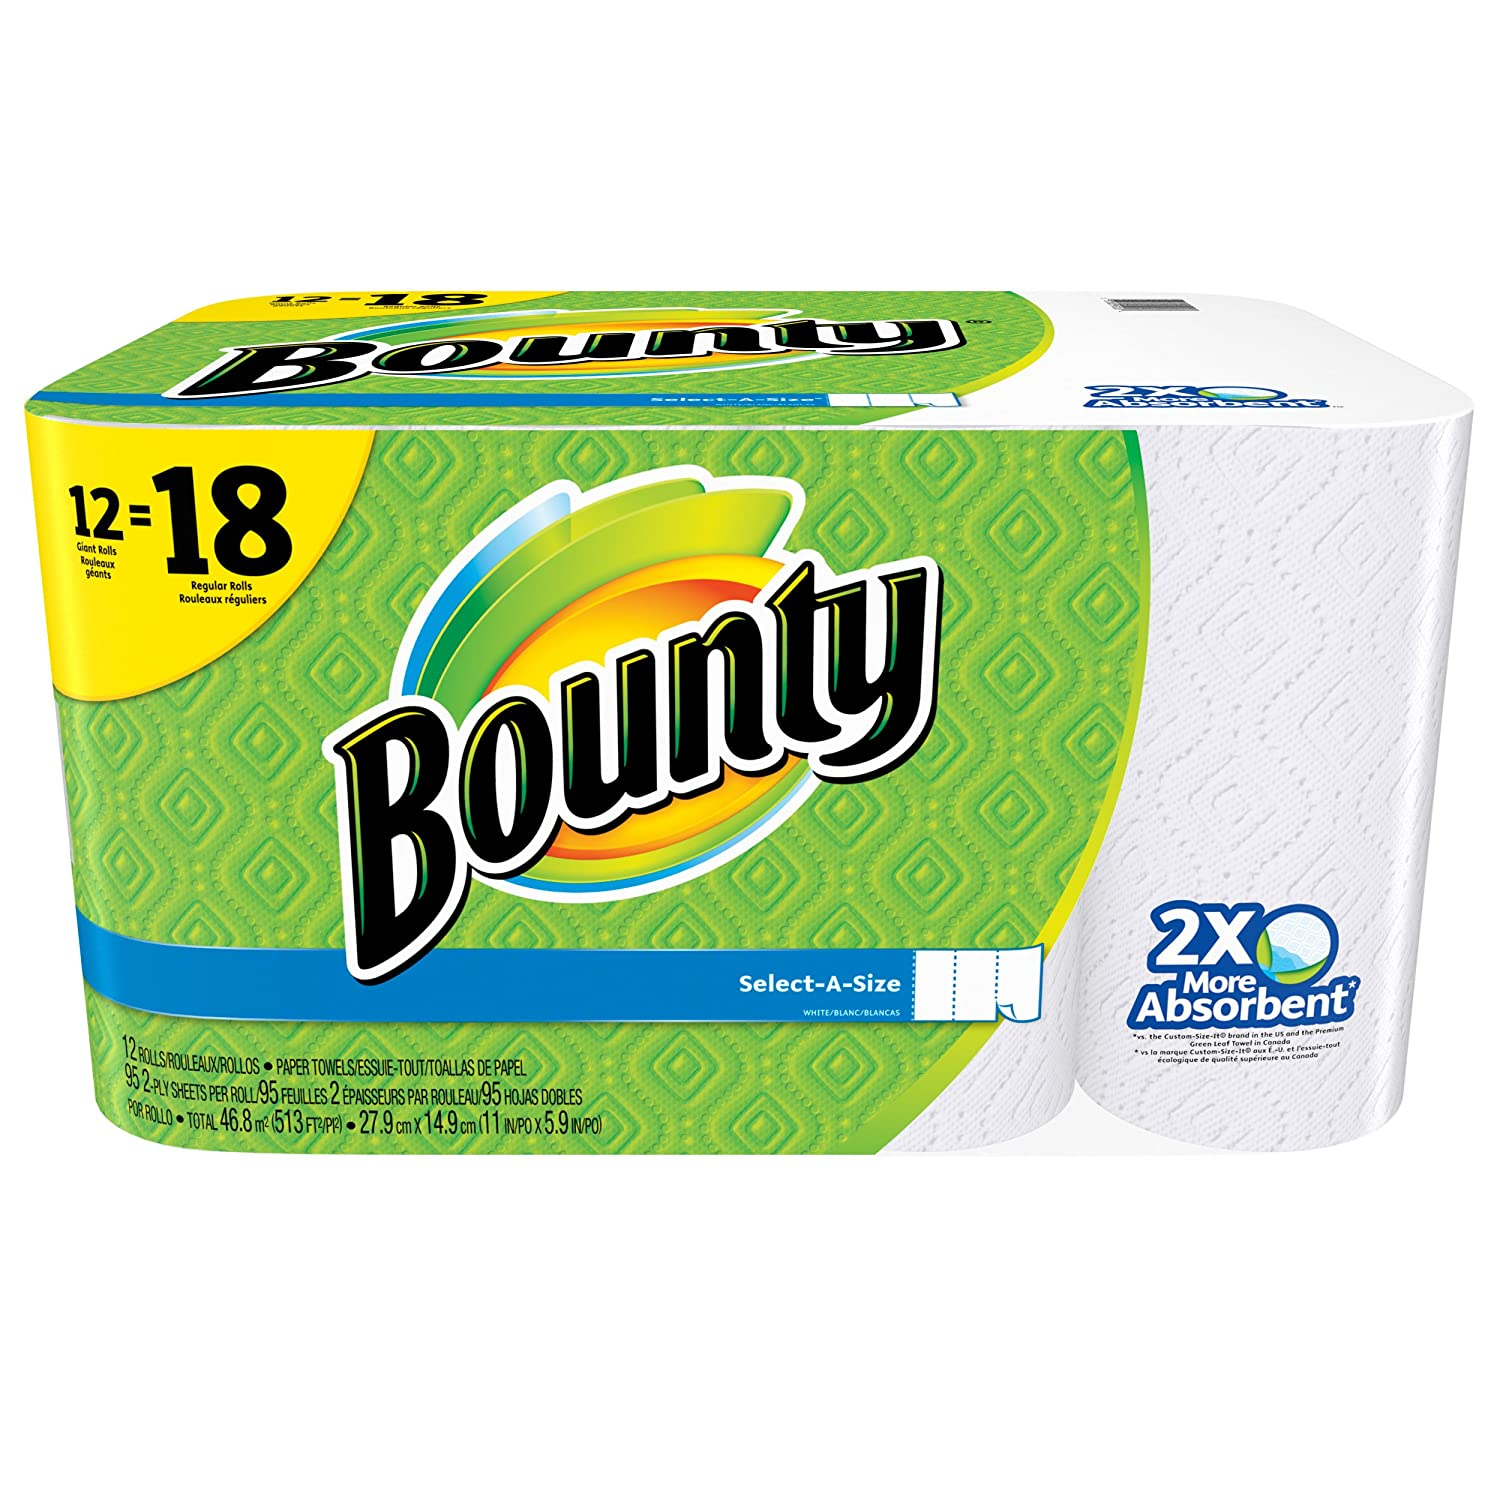 Amazon.com: Bounty Select-A-Size Paper Towels, White, Giant Roll - 12 pk: Health & Personal Care